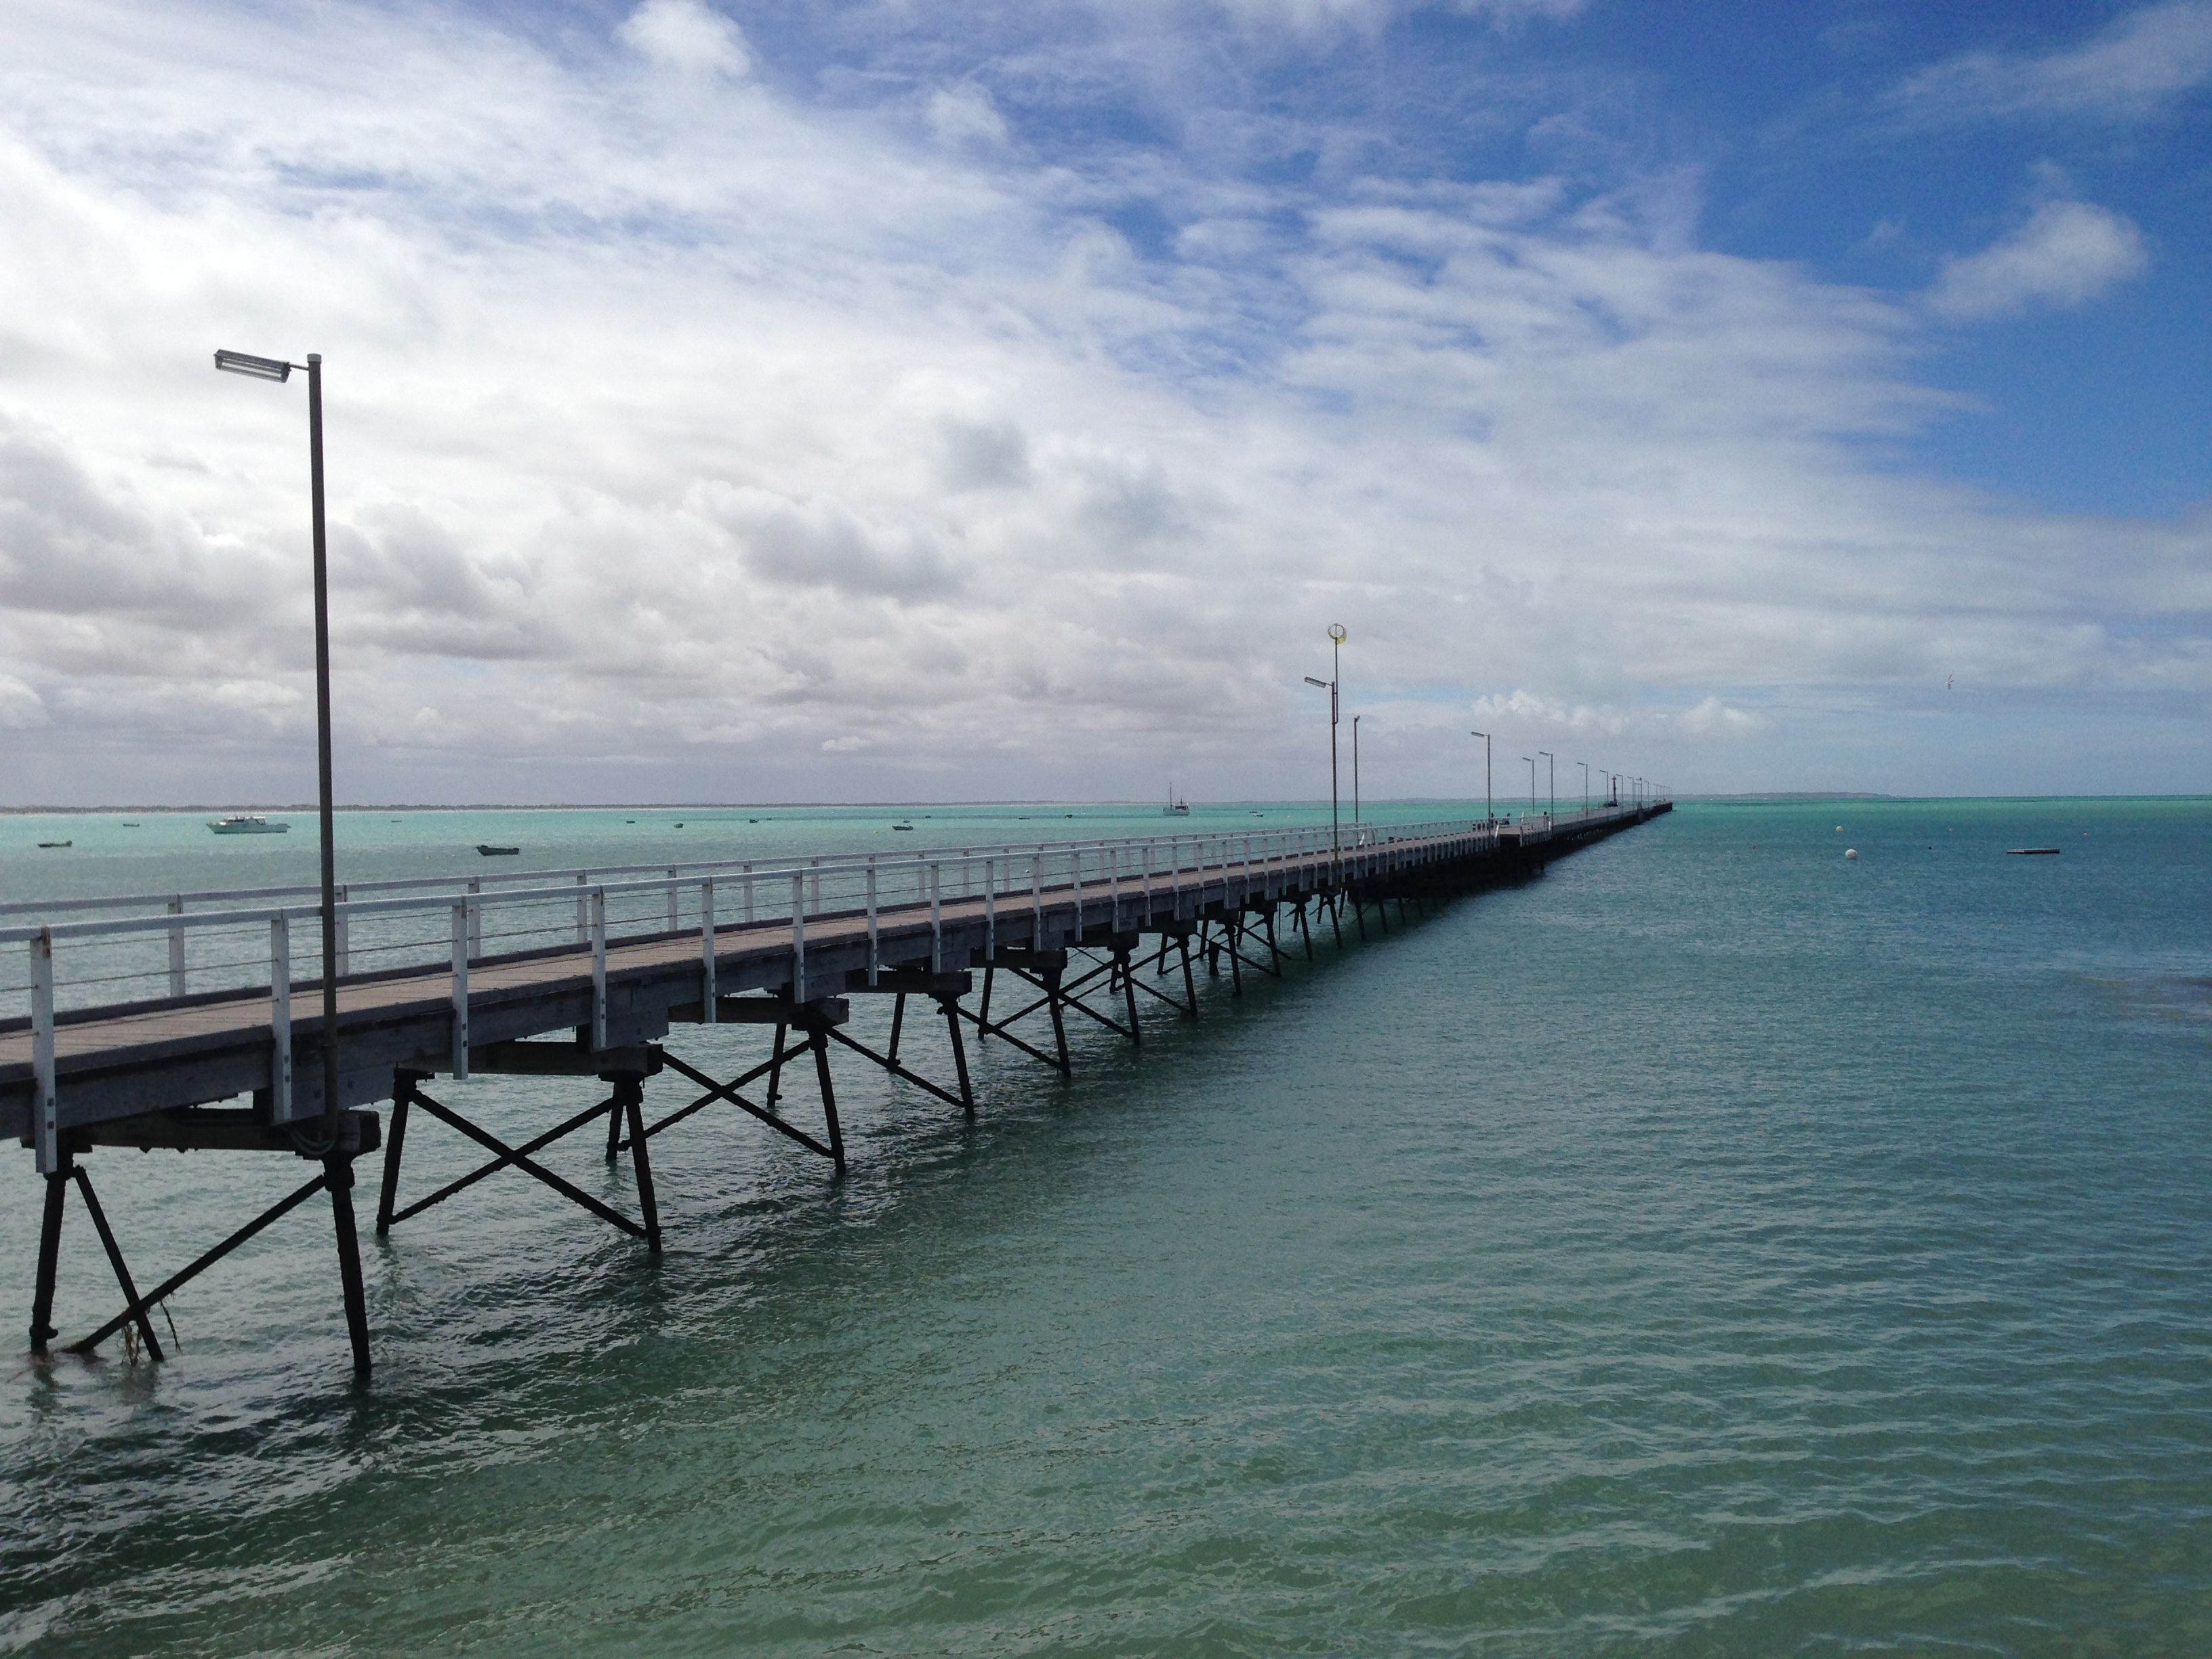 Beachport in South Australia